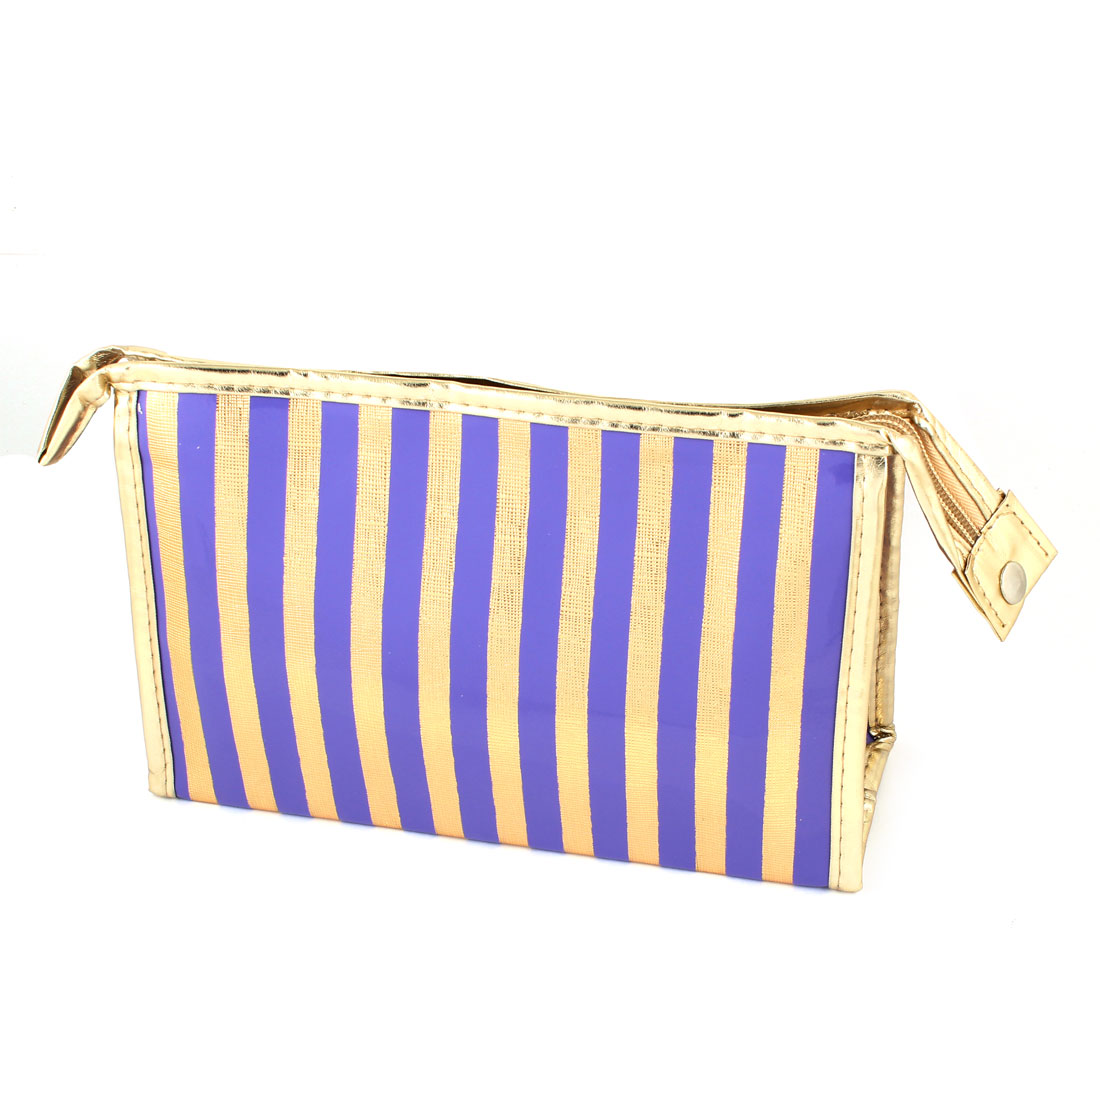 Lady Portable Gold Tone Purple Stripes Print Waterproof Makeup Bag w Mirror